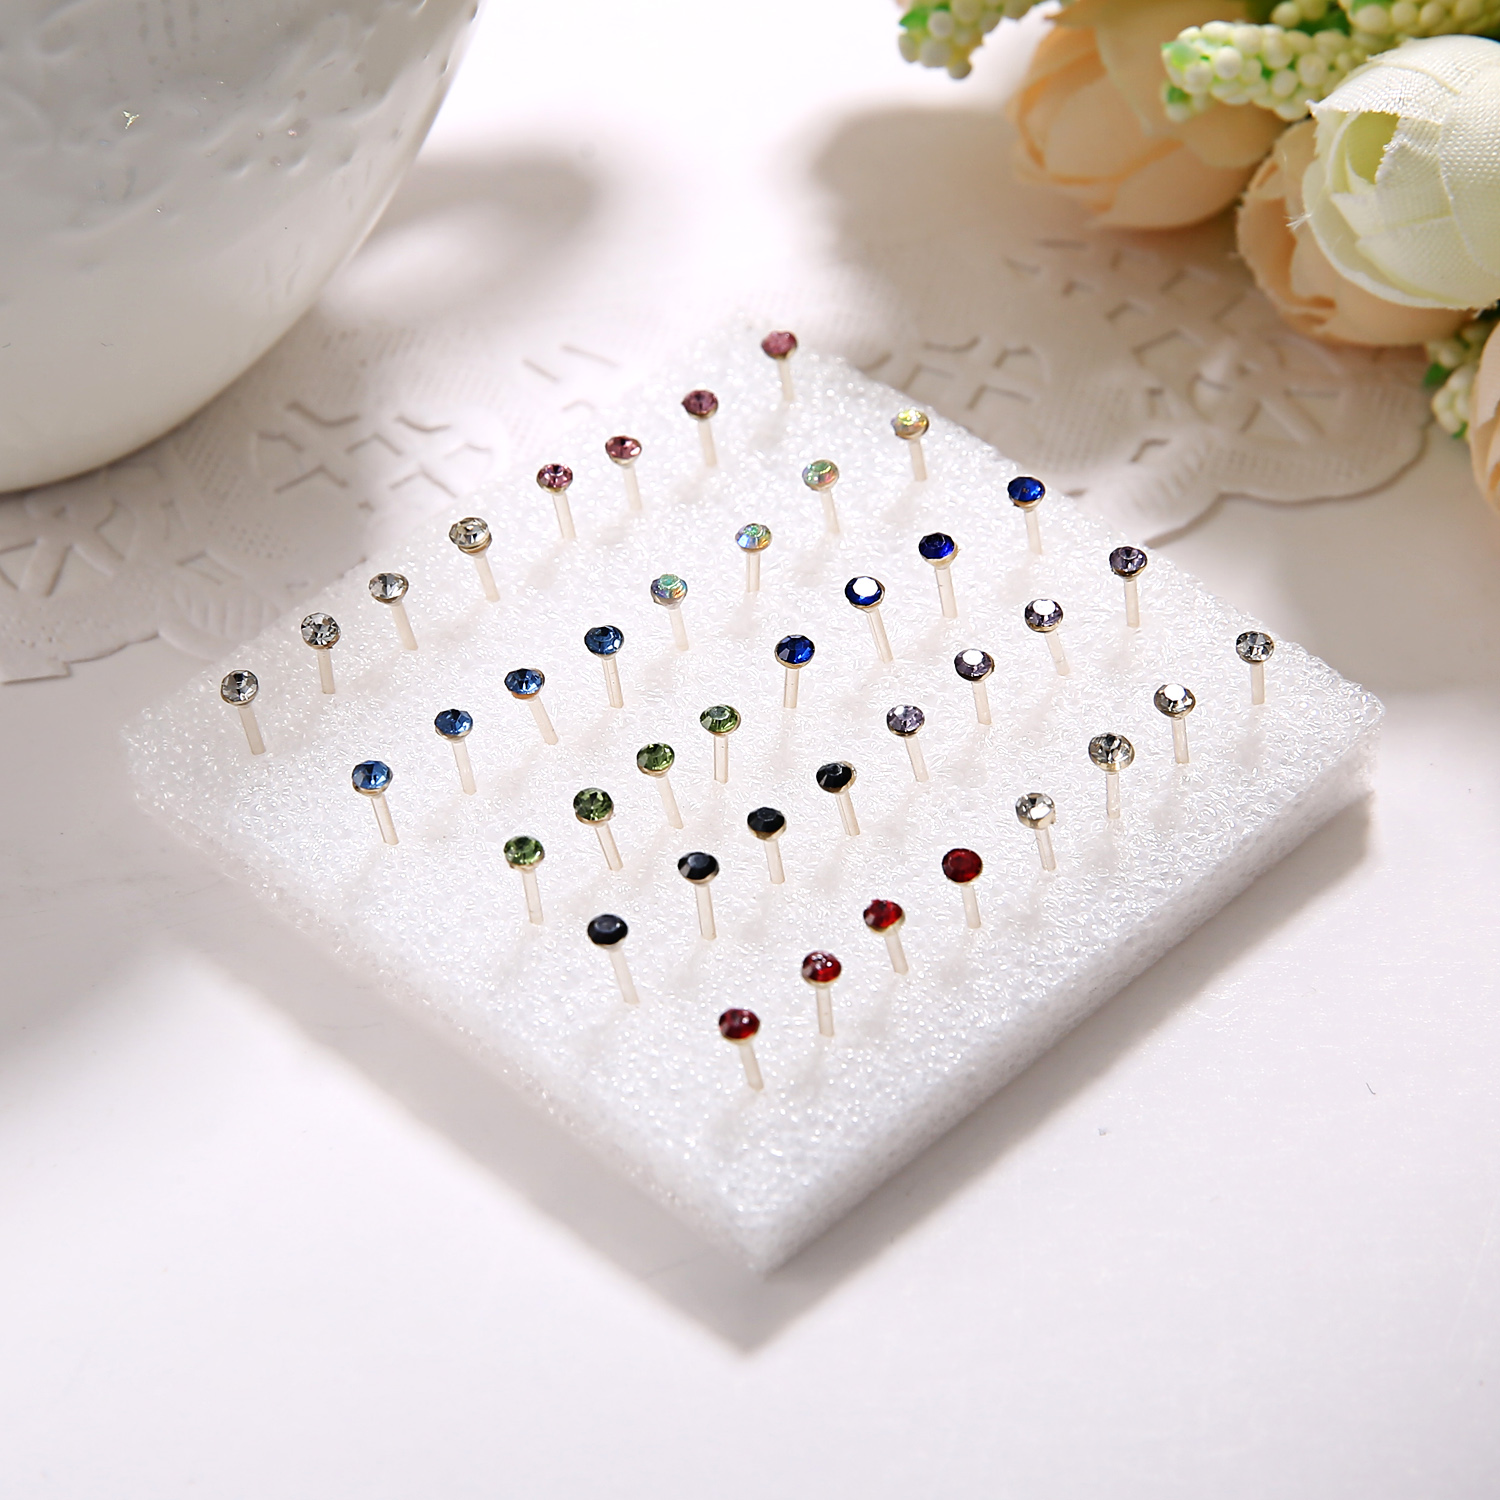 20 Pair/Set Women Girl Rhinestone Crystal Ear Stud Earrings Mixed Styles Round Small Earrings Sets Party Jewelry Gift 2 3 4 5mm